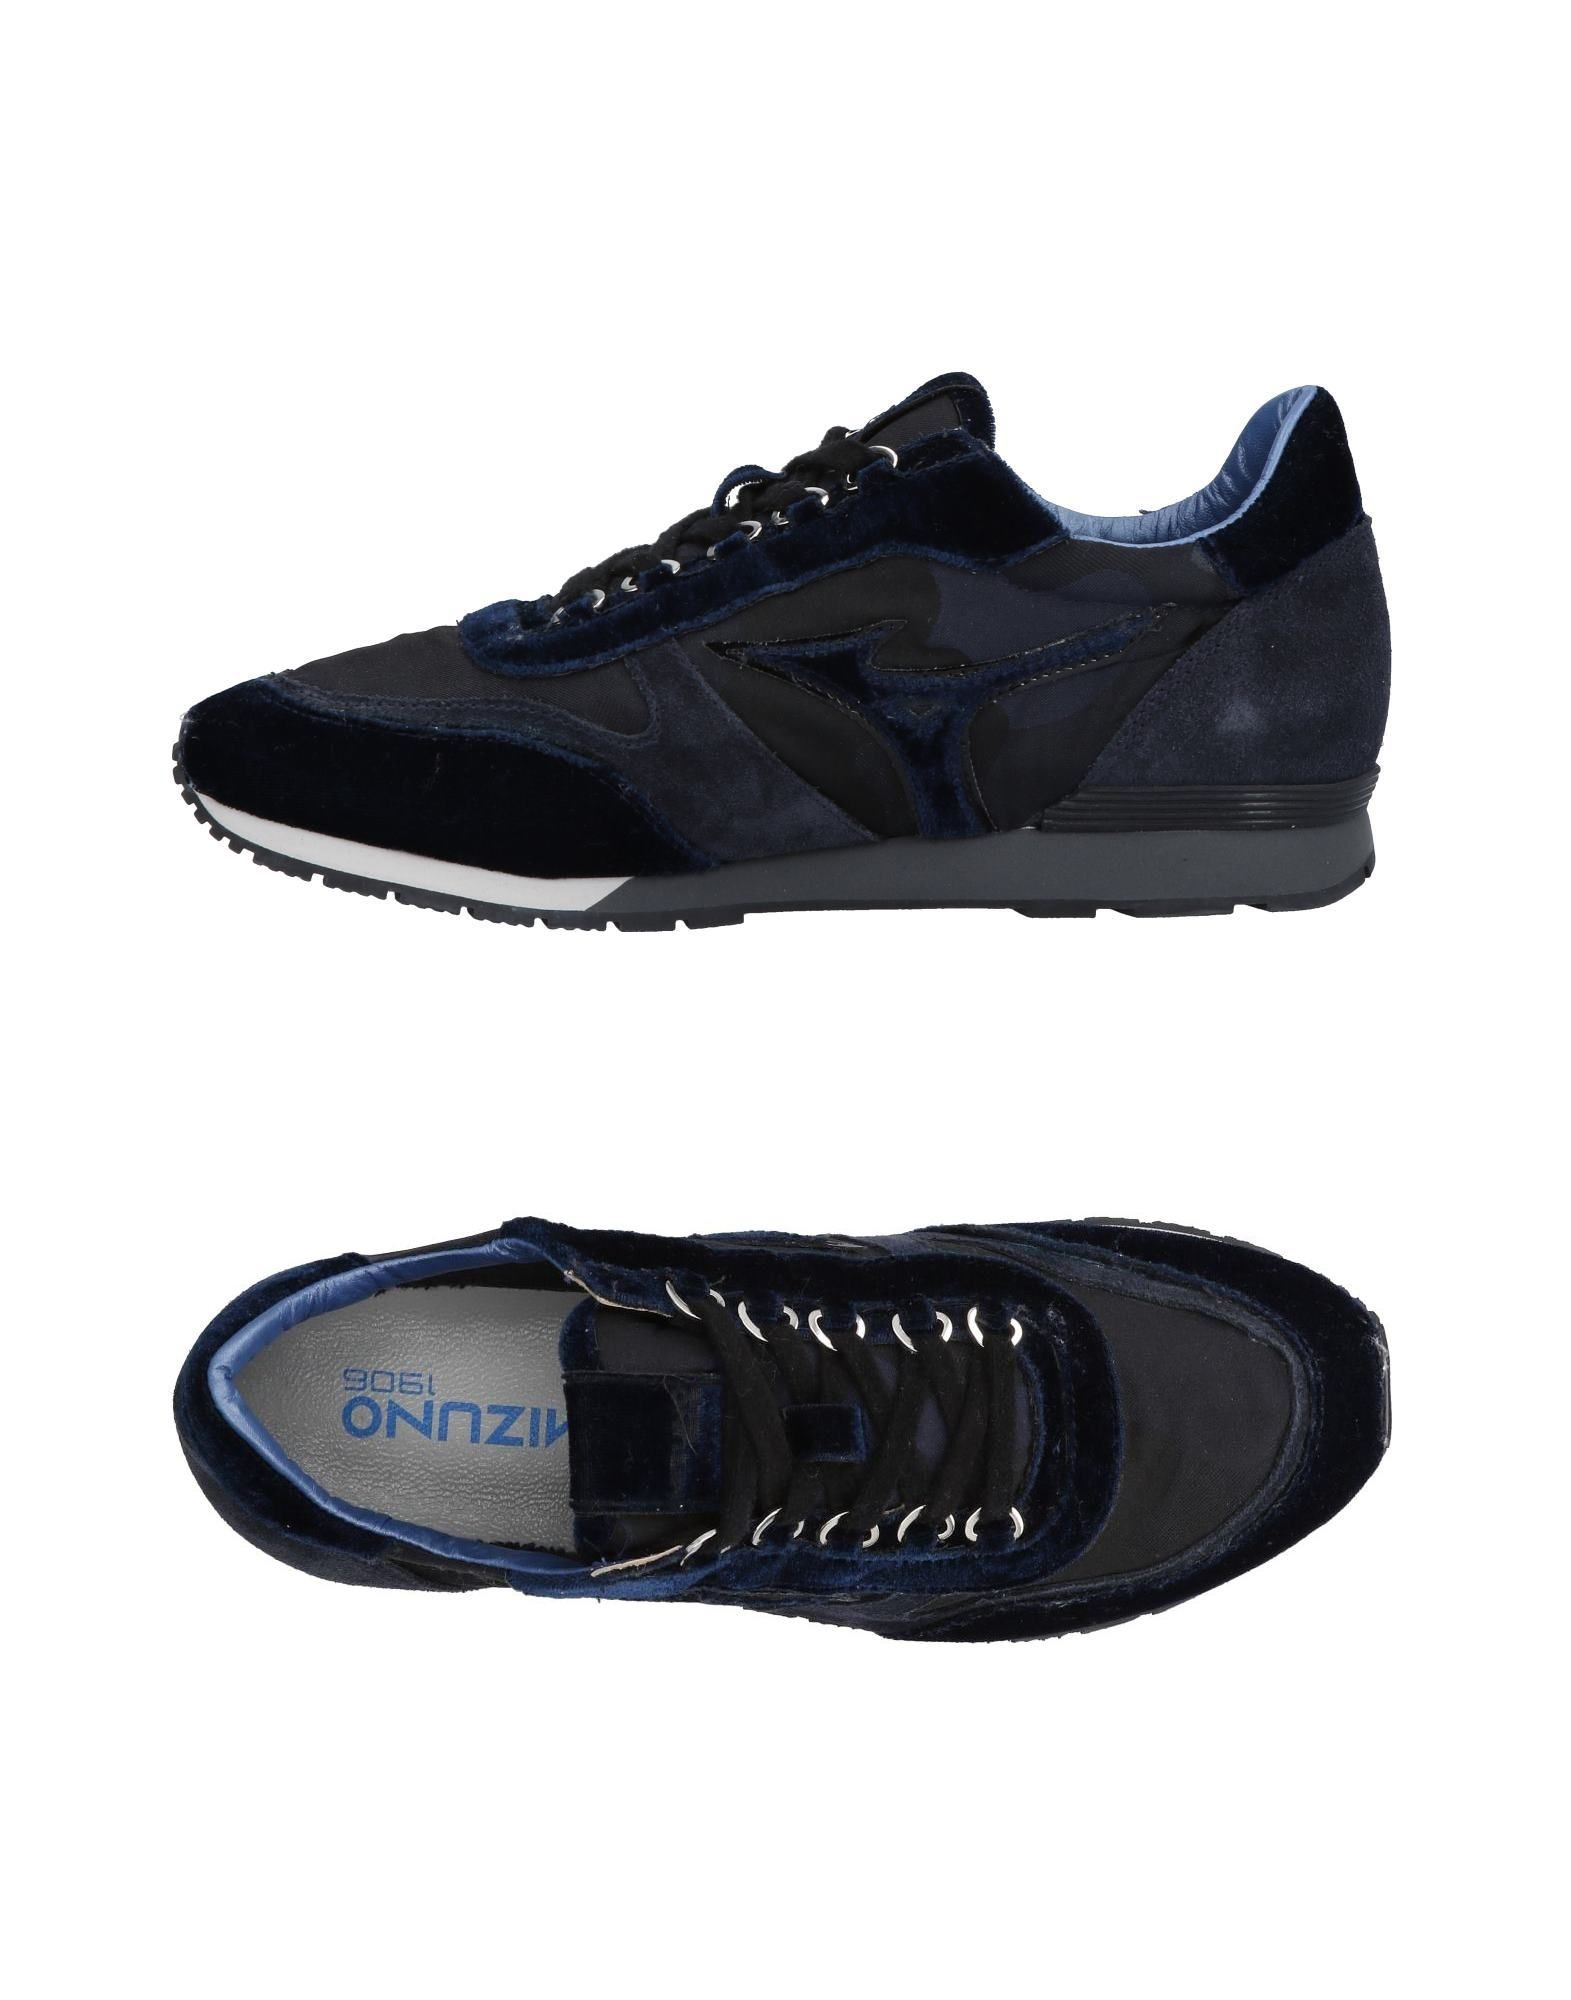 Mizuno Sneakers - Men Mizuno Sneakers online 11471456IA on  Canada - 11471456IA online 3c07e4